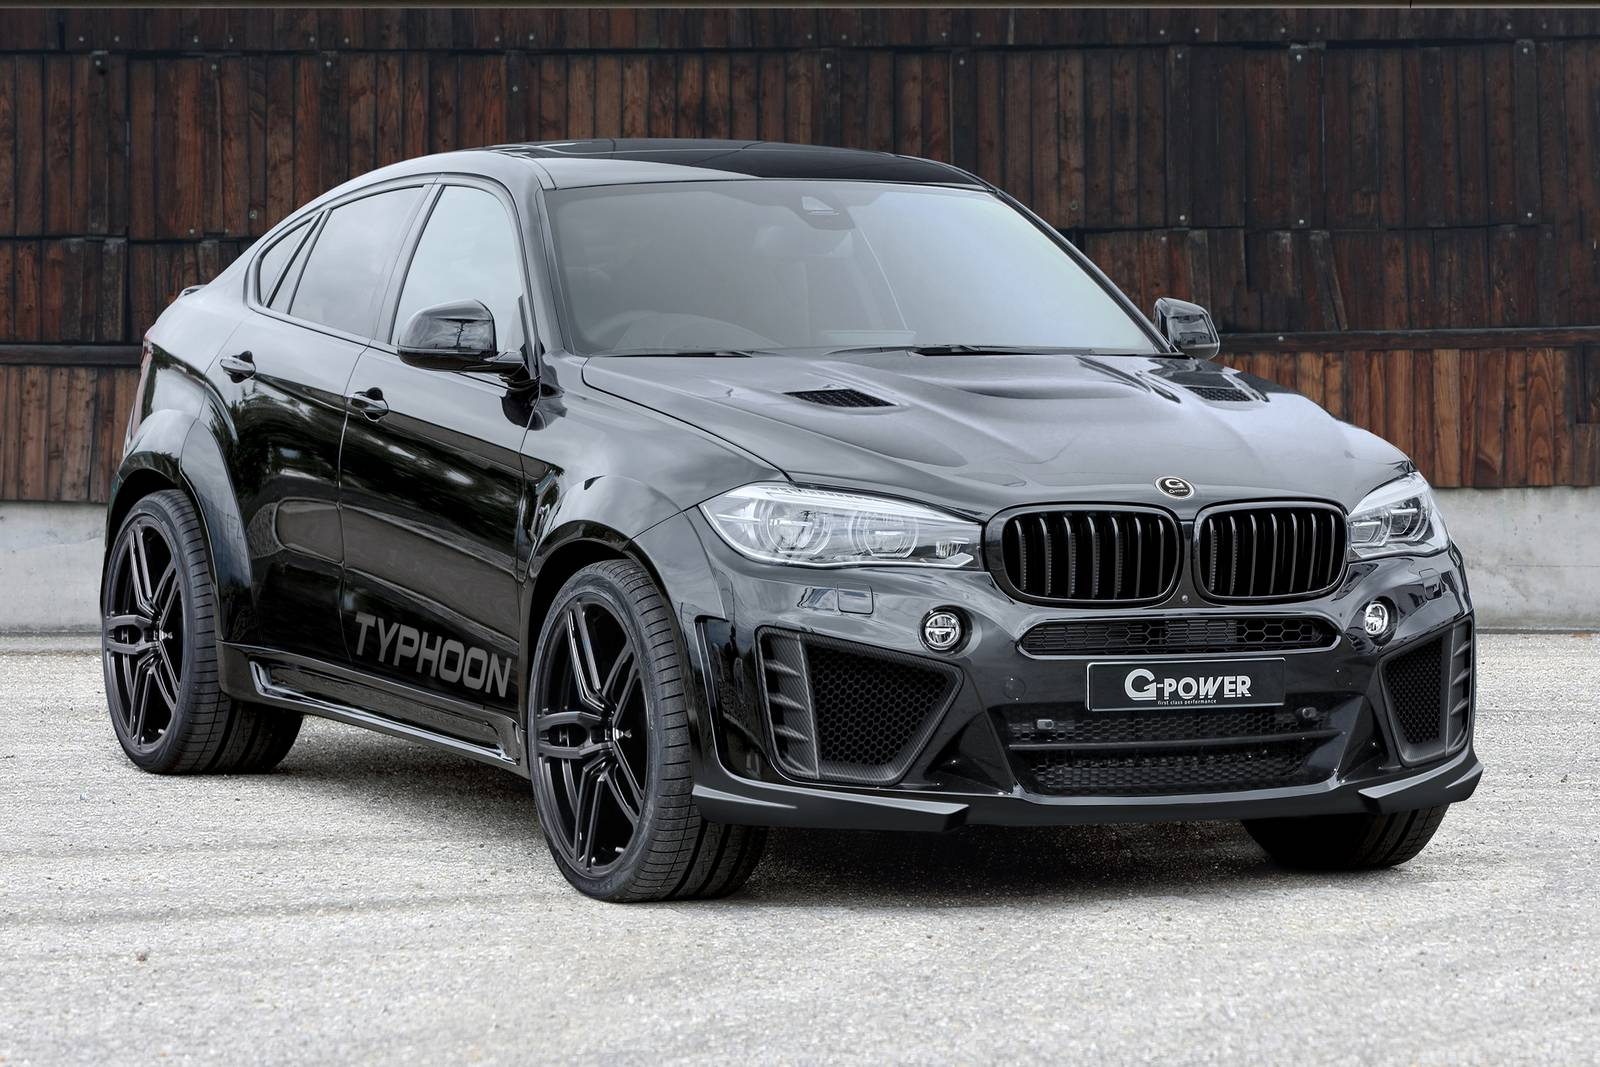 Bmw Xm6 Official 750hp G Power Bmw X6 M Typhoon Gtspirit 2016 Bmw X6m F86 Exhaust Sound